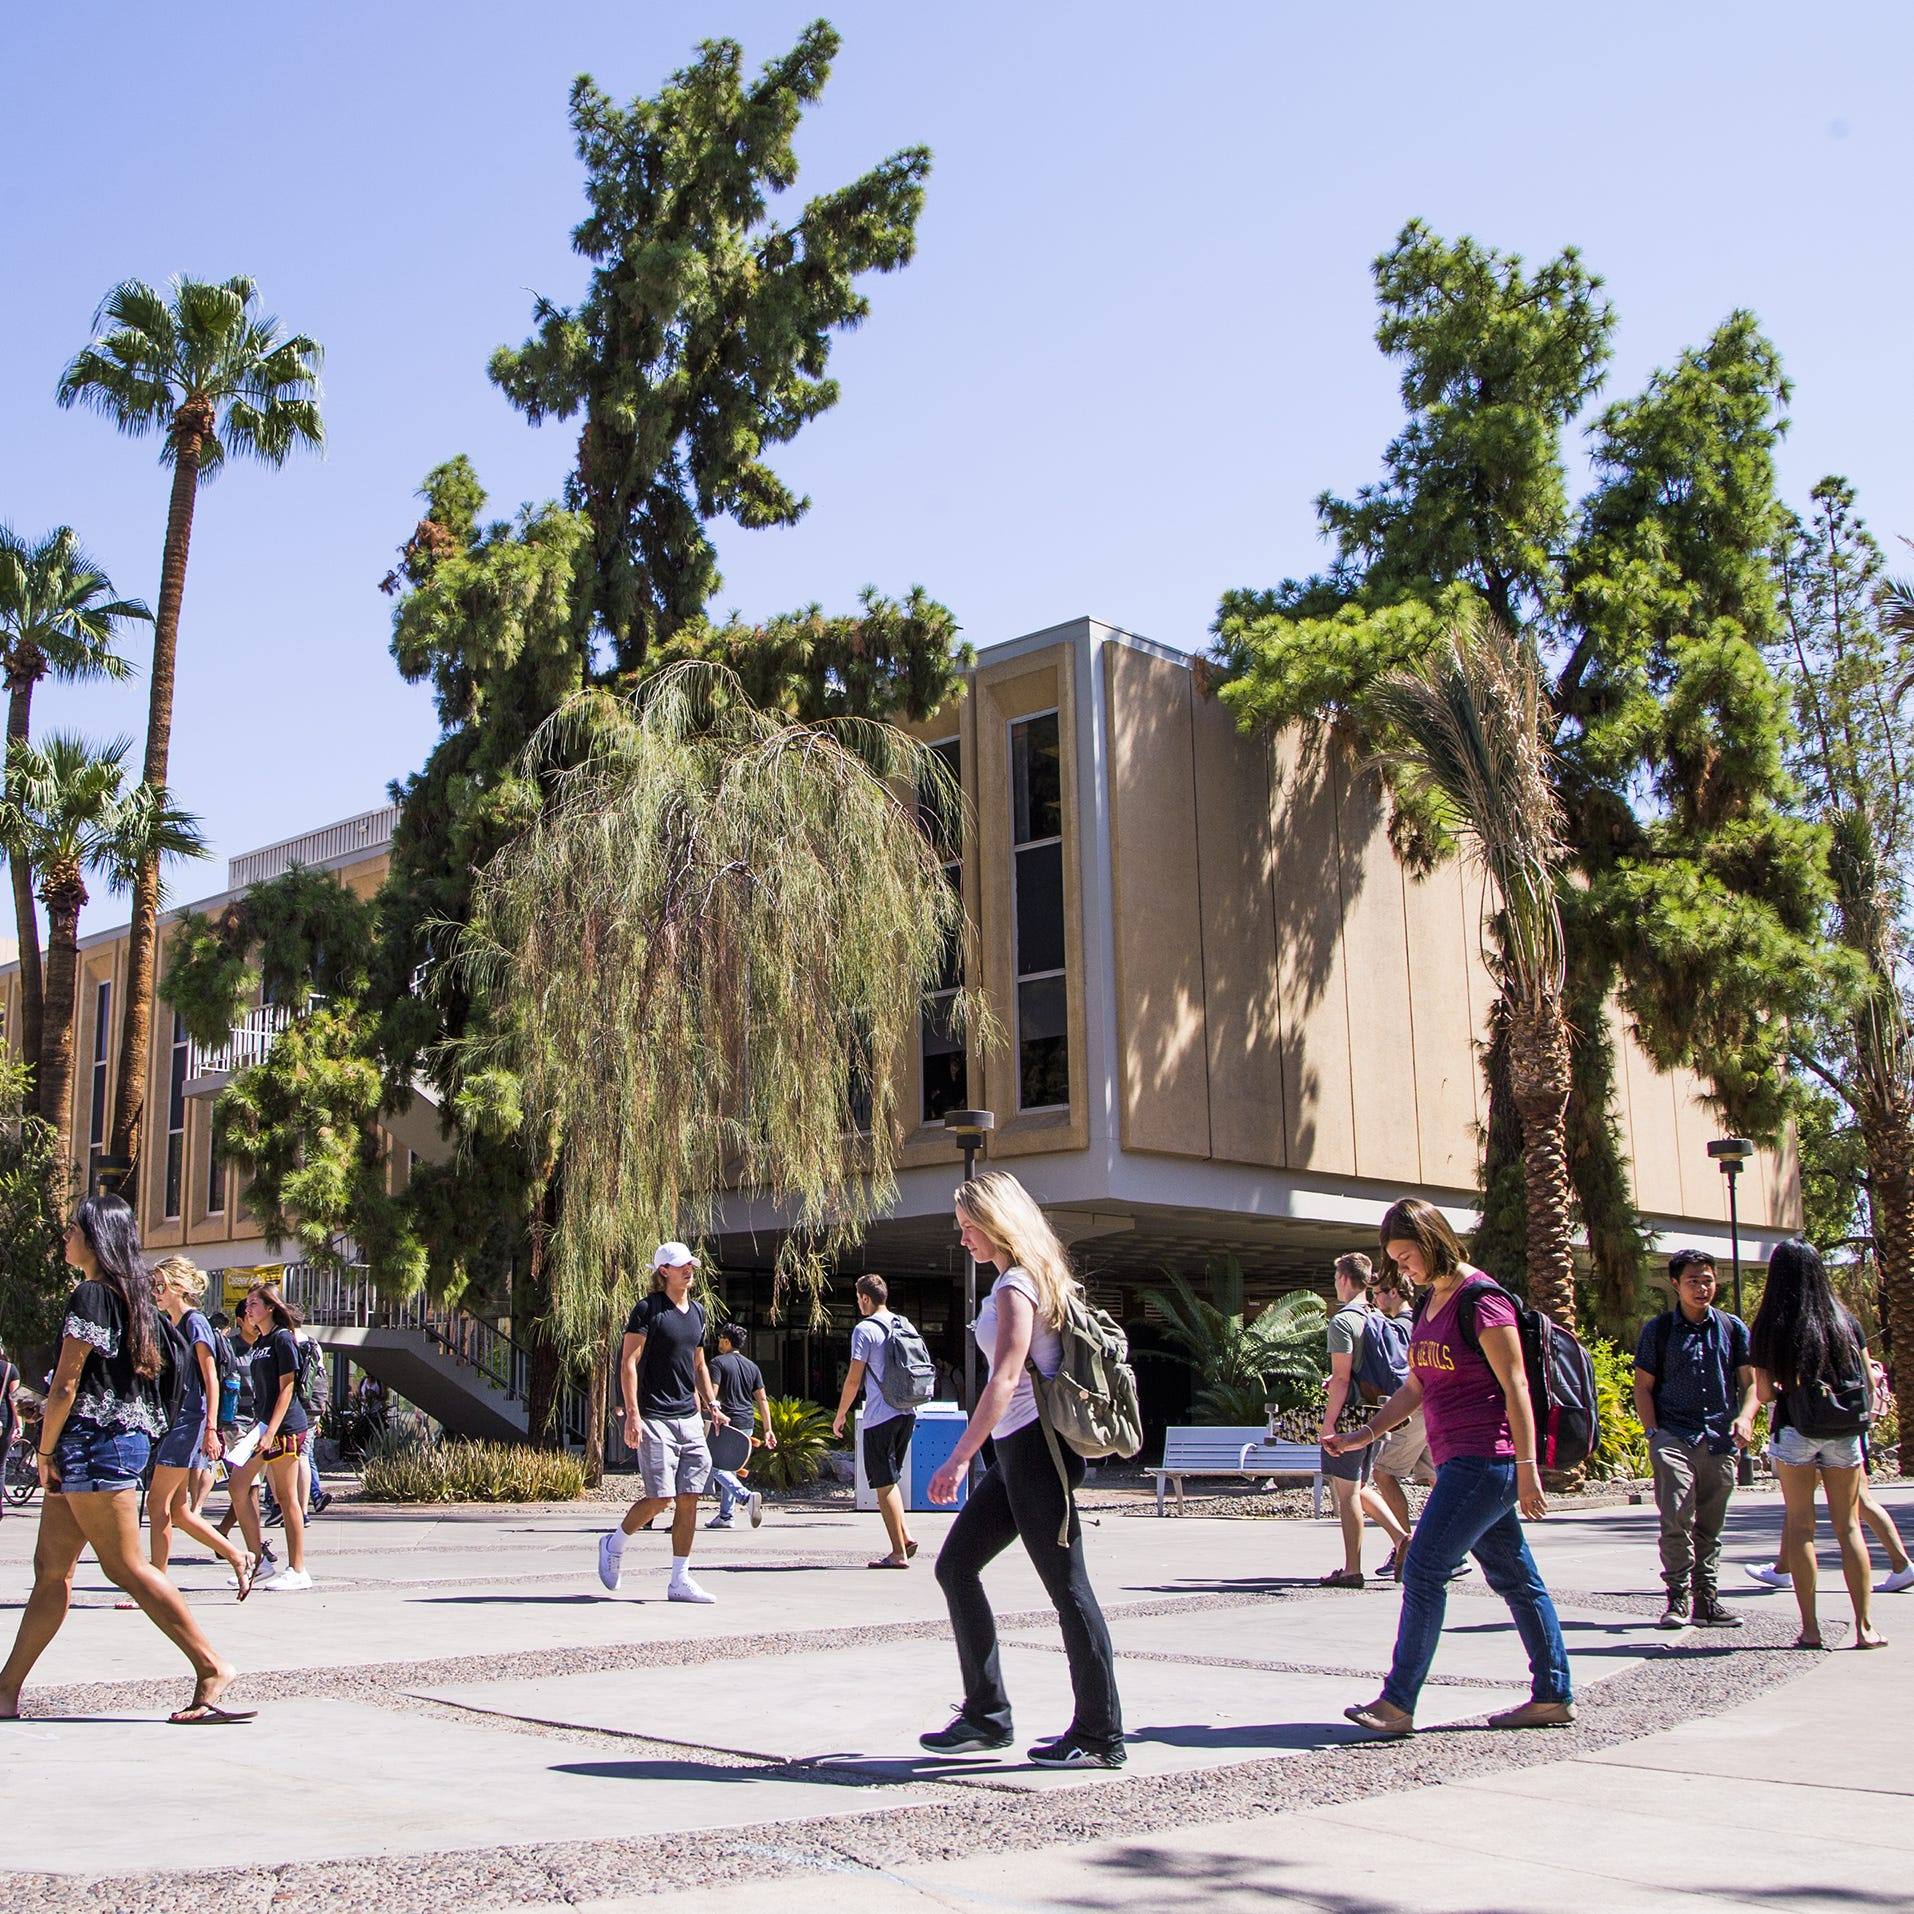 Arizona State University was paid for controversial economics course materials, despite claiming otherwise